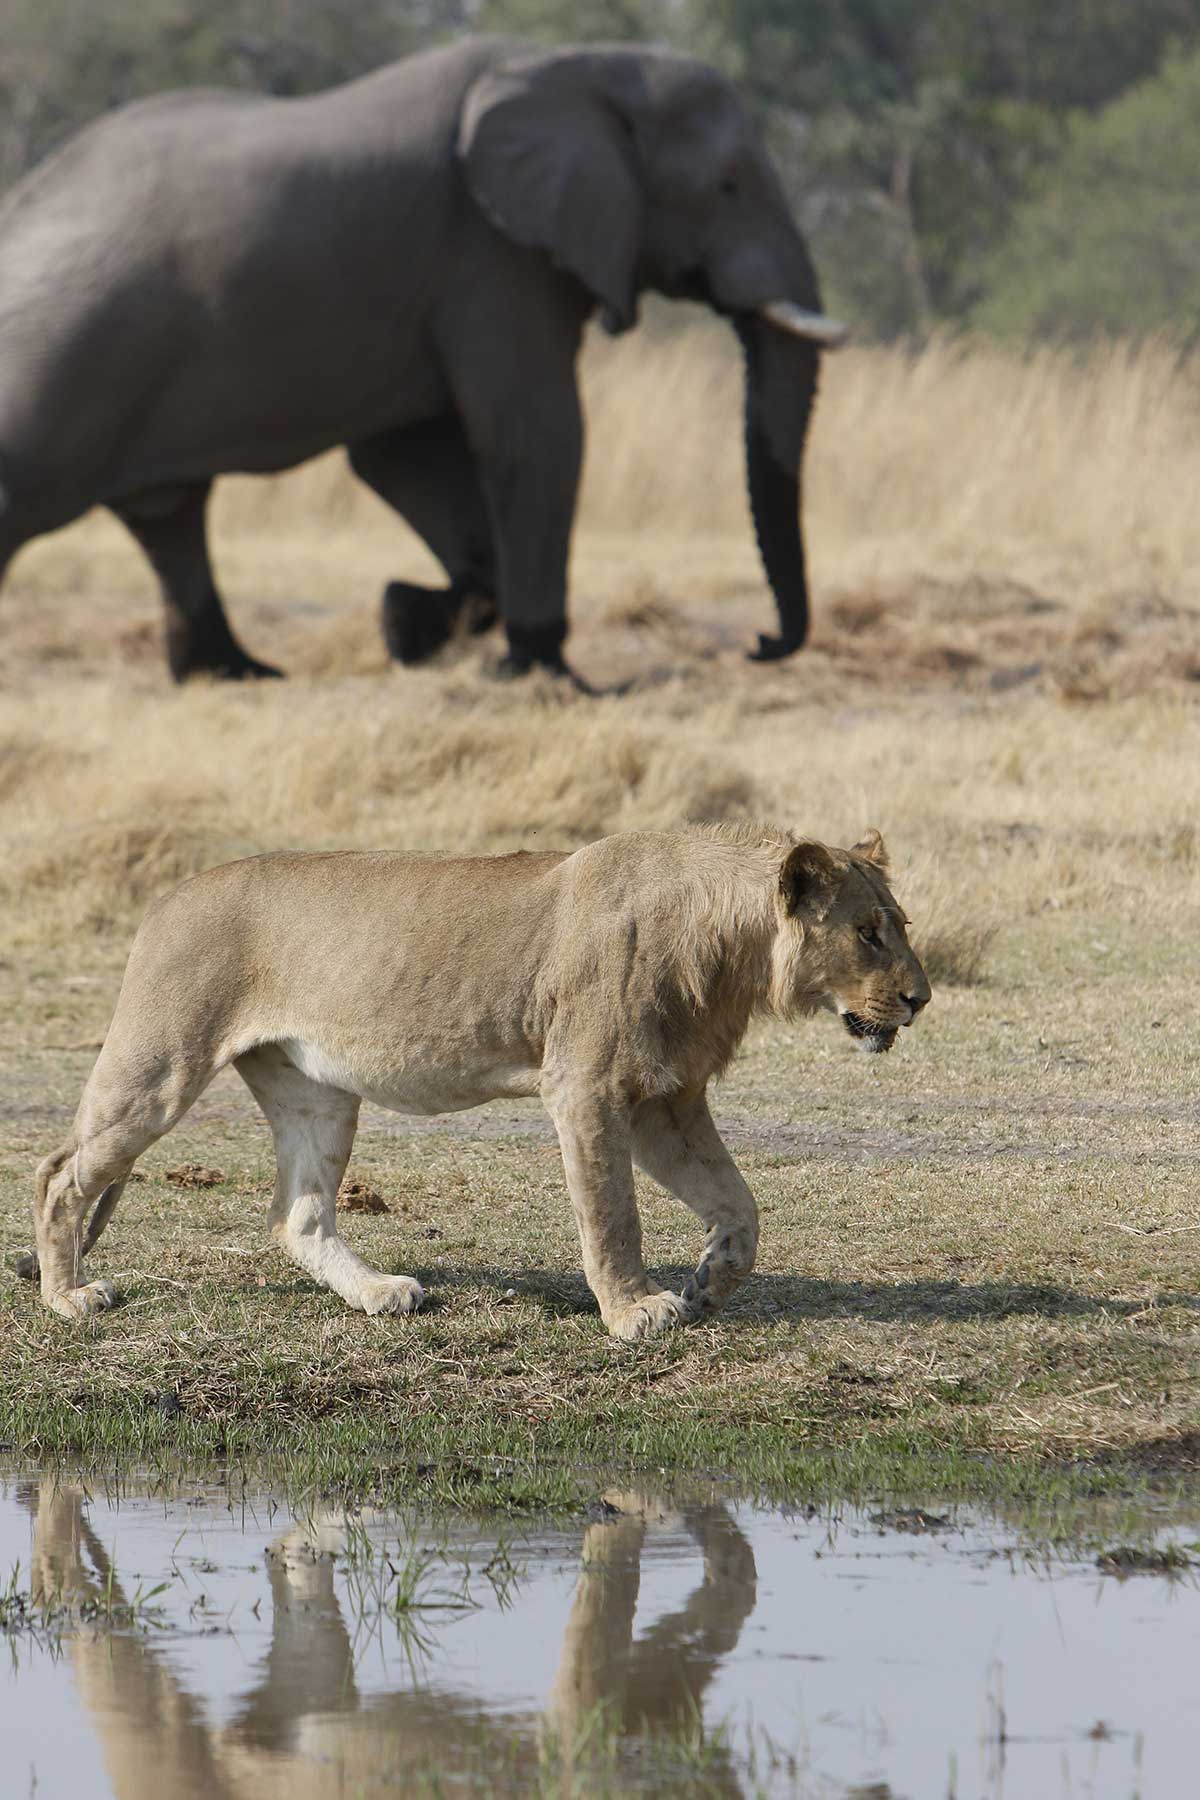 Lioness and elephant game drive with Chase Africa Safaris